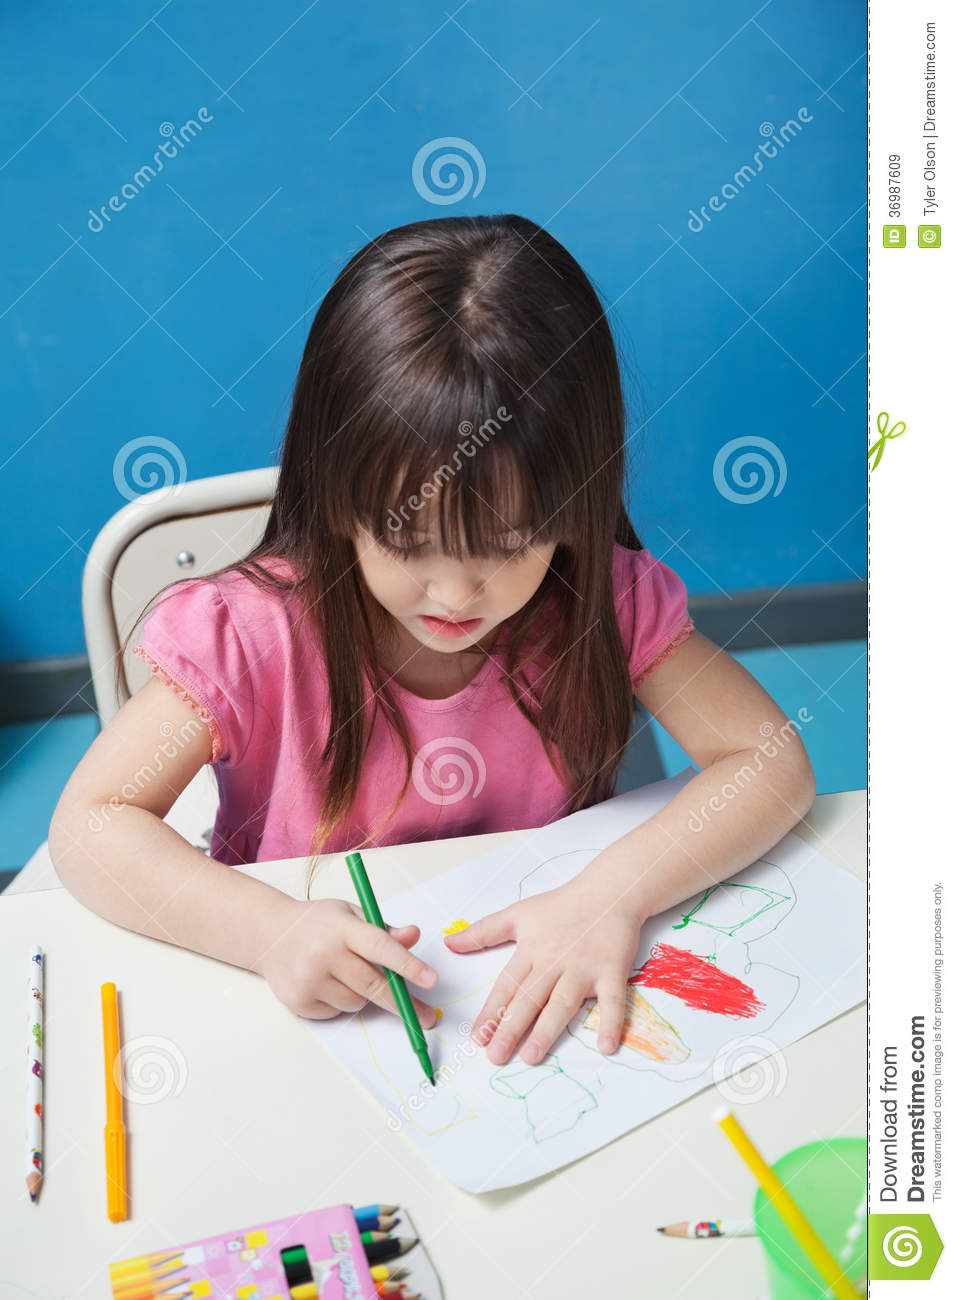 Classroom Design Sketch ~ Girl drawing with sketch pen in classroom royalty free